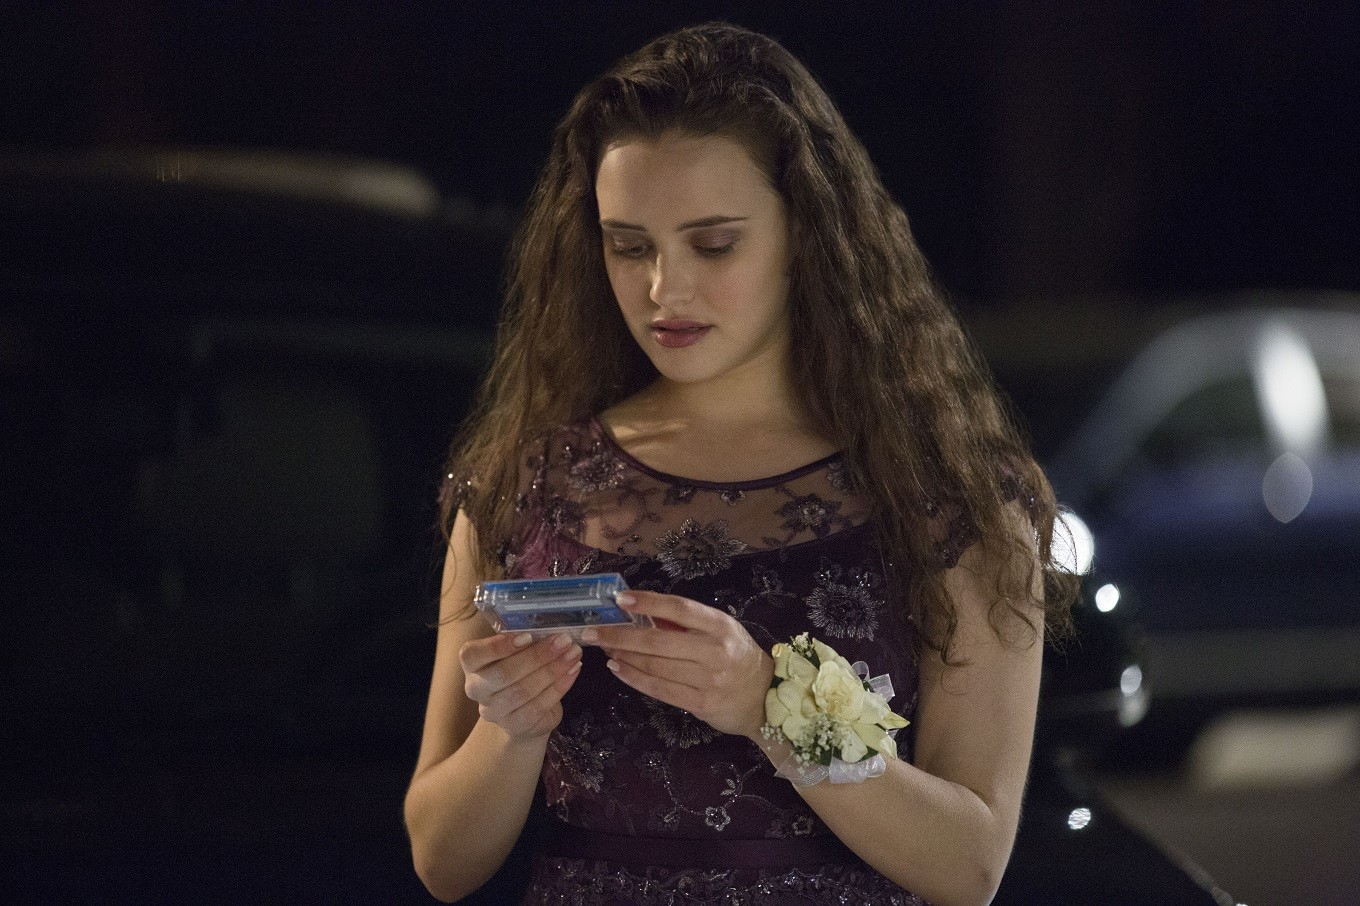 Online 'suicide' searches spiked after Netflix's '13 Reasons Why': Study